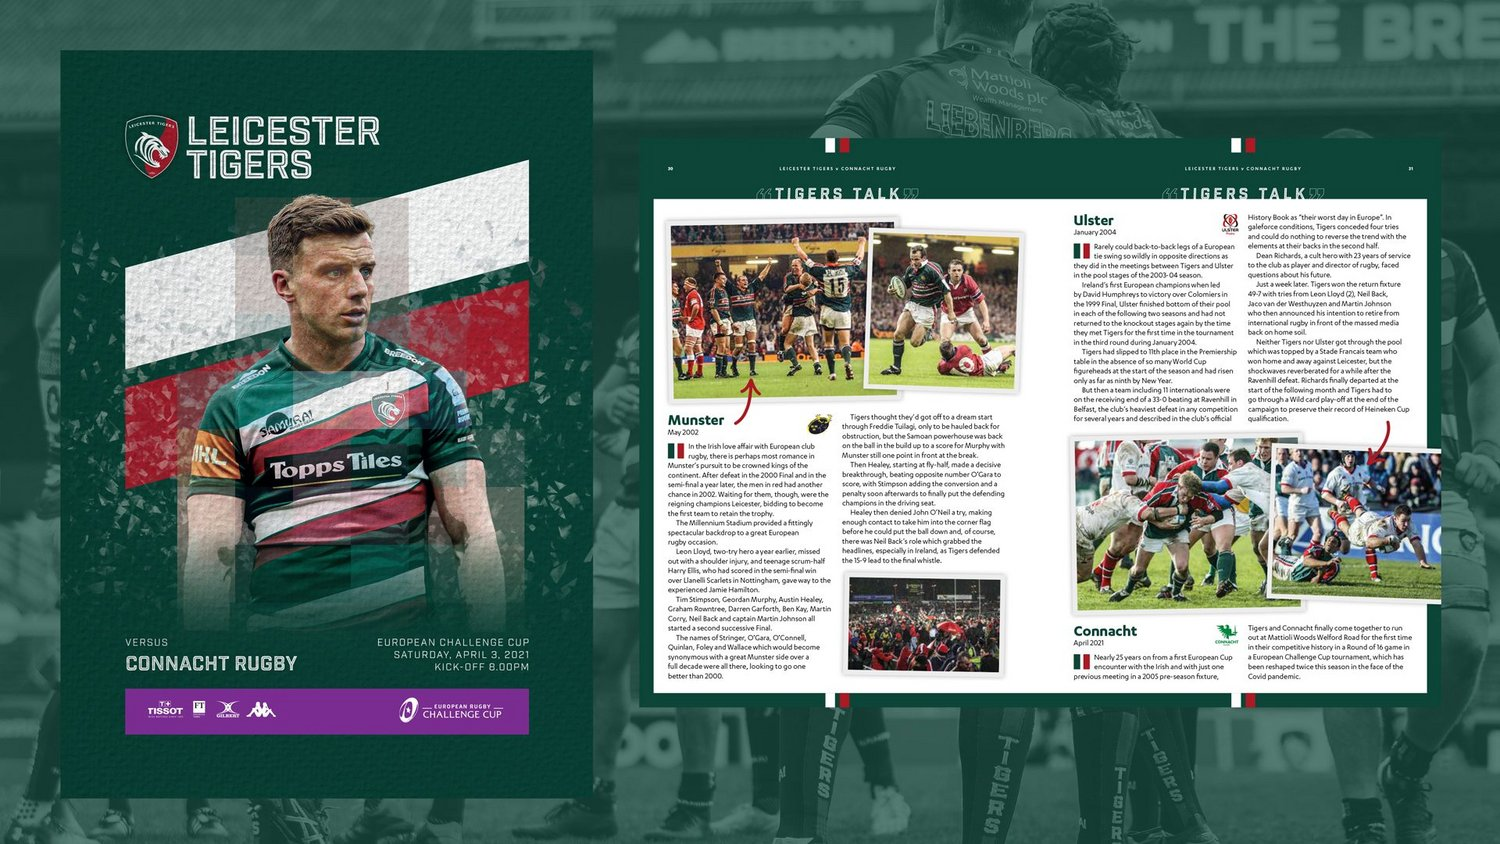 Leicester Tigers v Connacht Rugby 2020-21 - Digital Matchday Programme